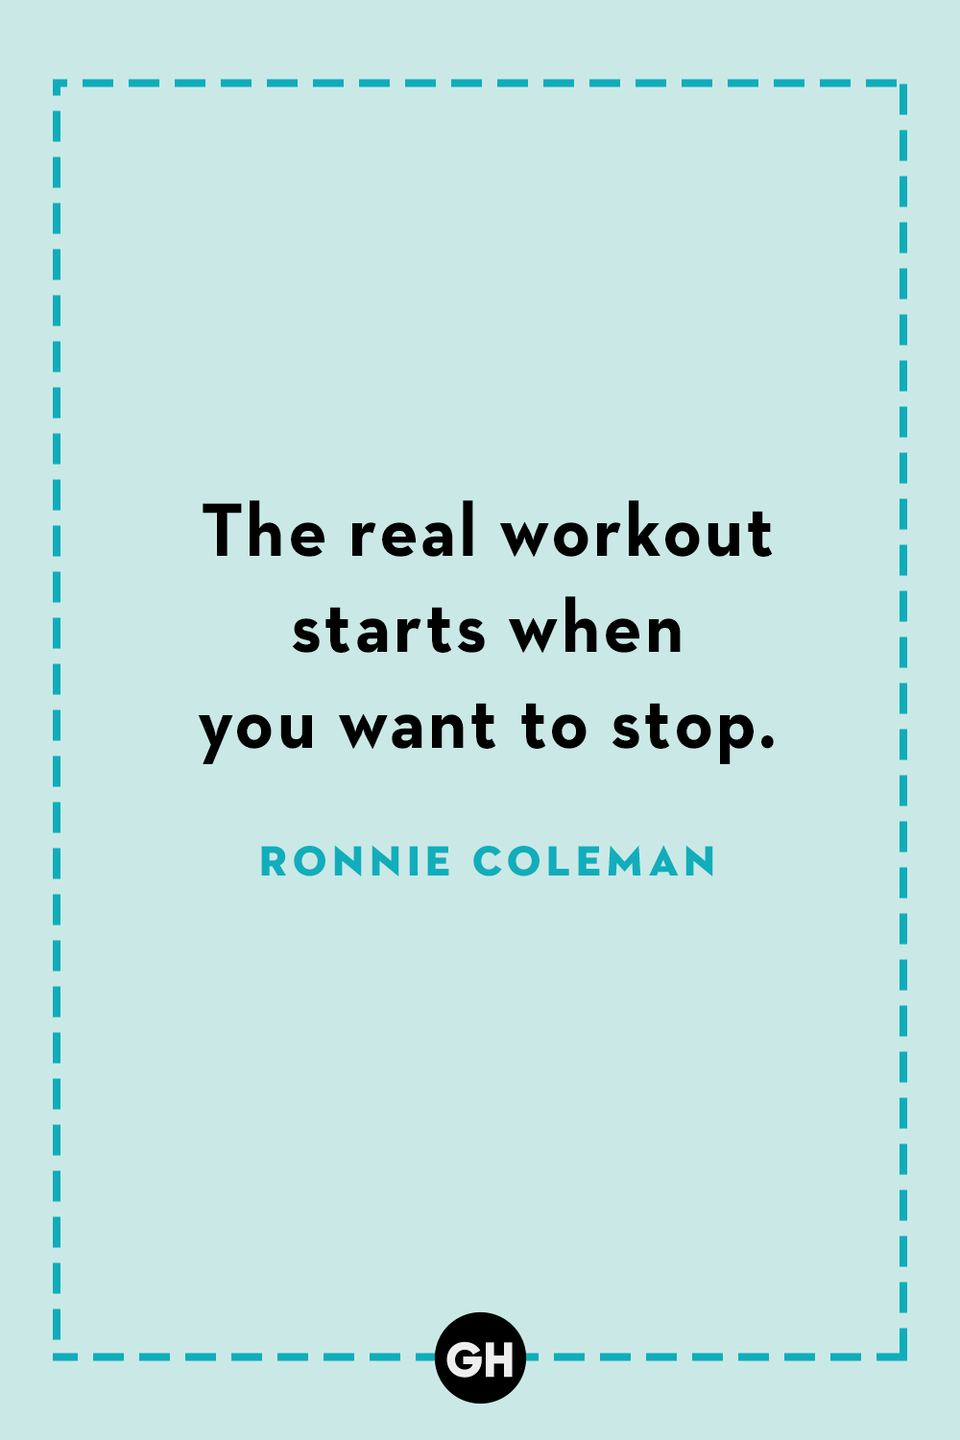 <p>The real workout starts when you want to stop.</p>